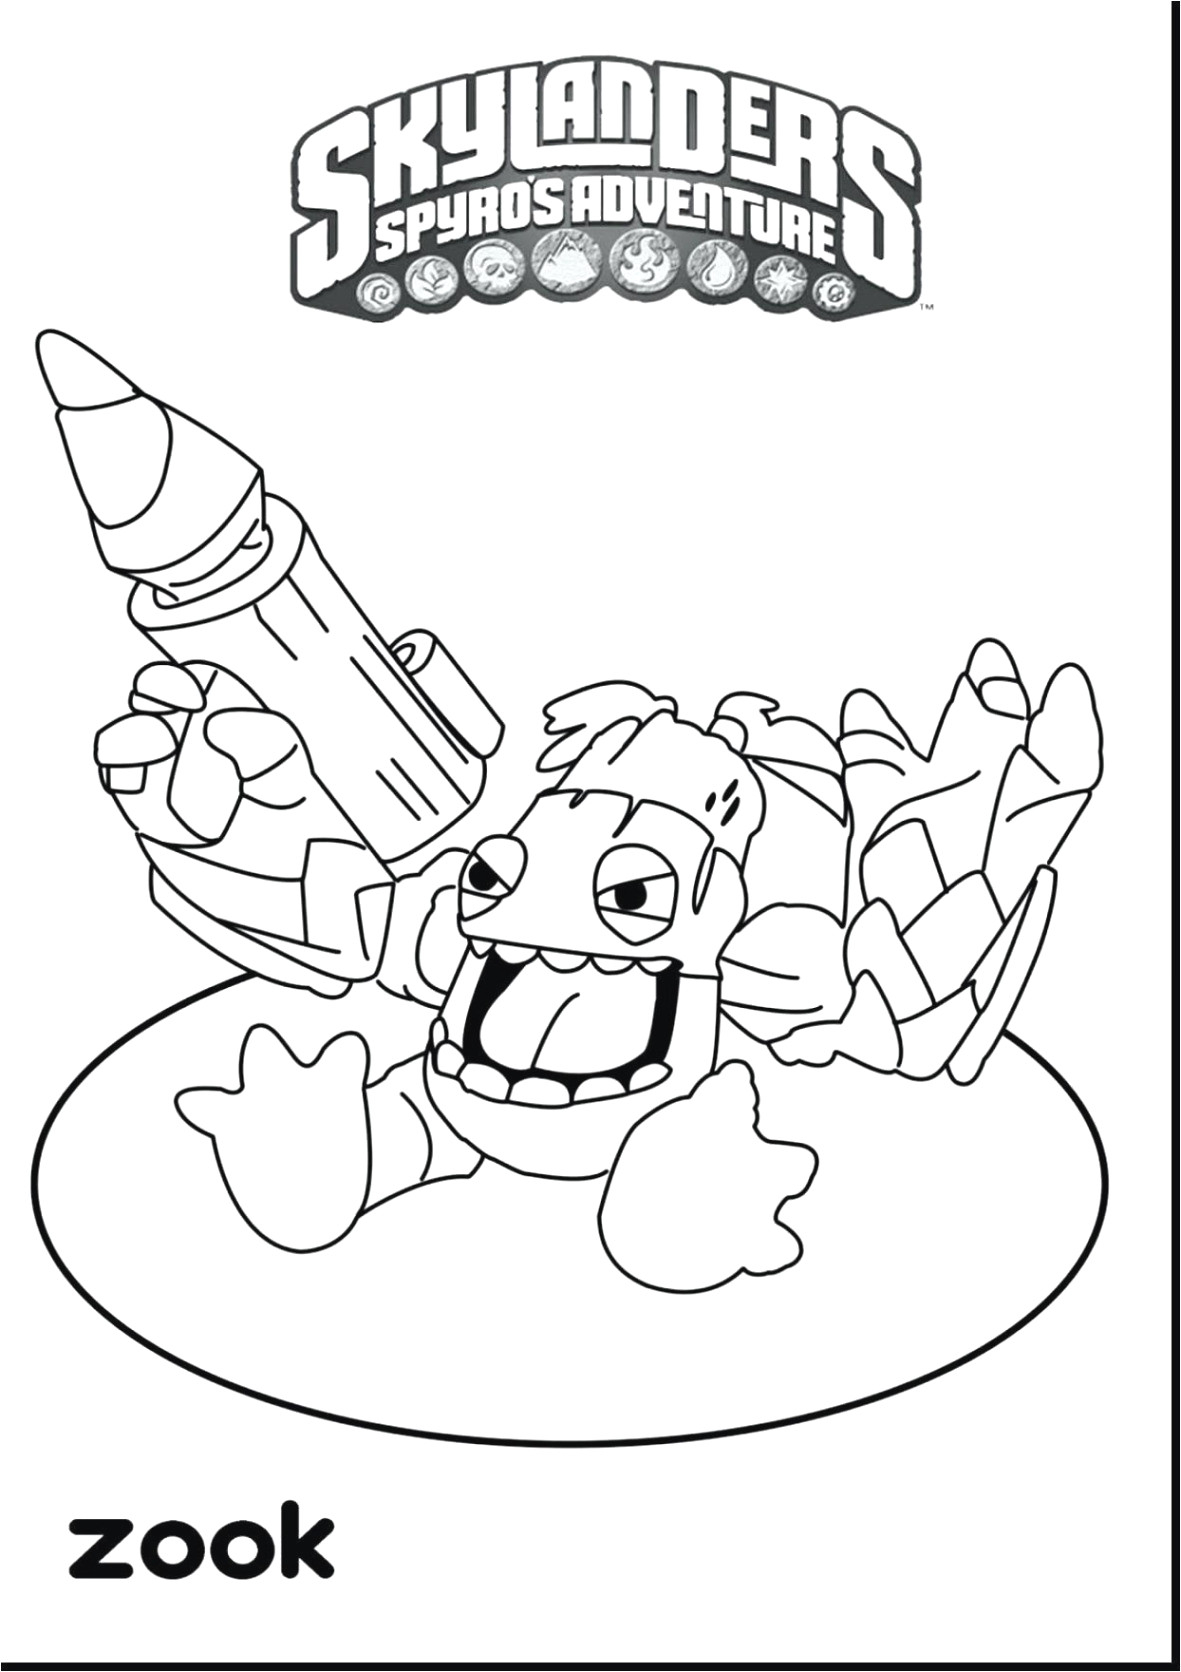 Rudolph Coloring Page Rudolph The Red Nosed Reindeer